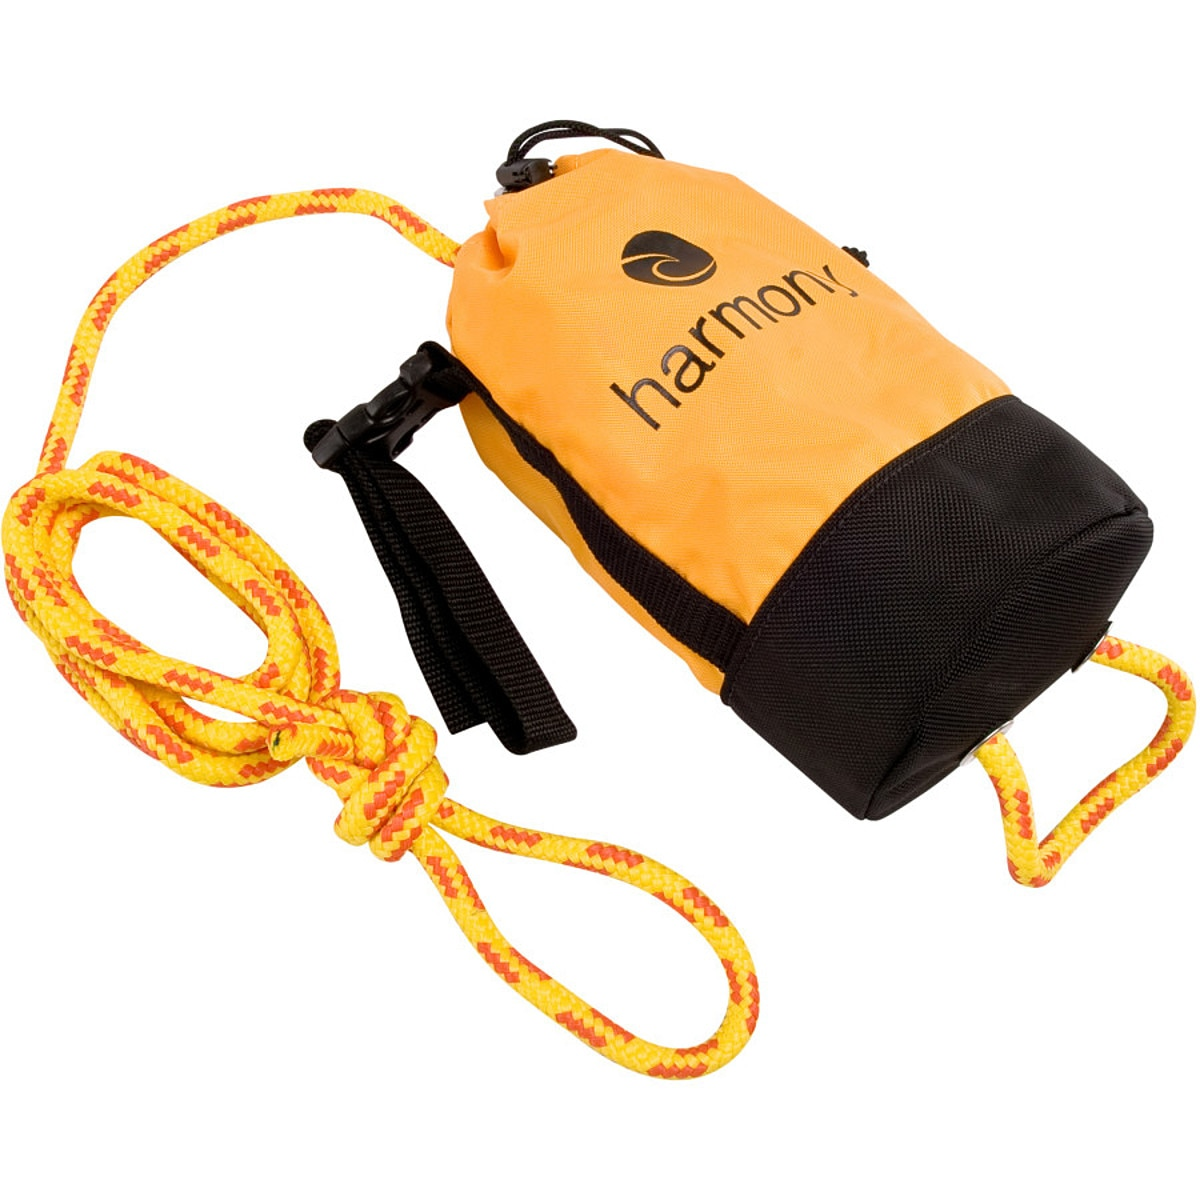 Harmony 50 Foot Rescue Throw Bag